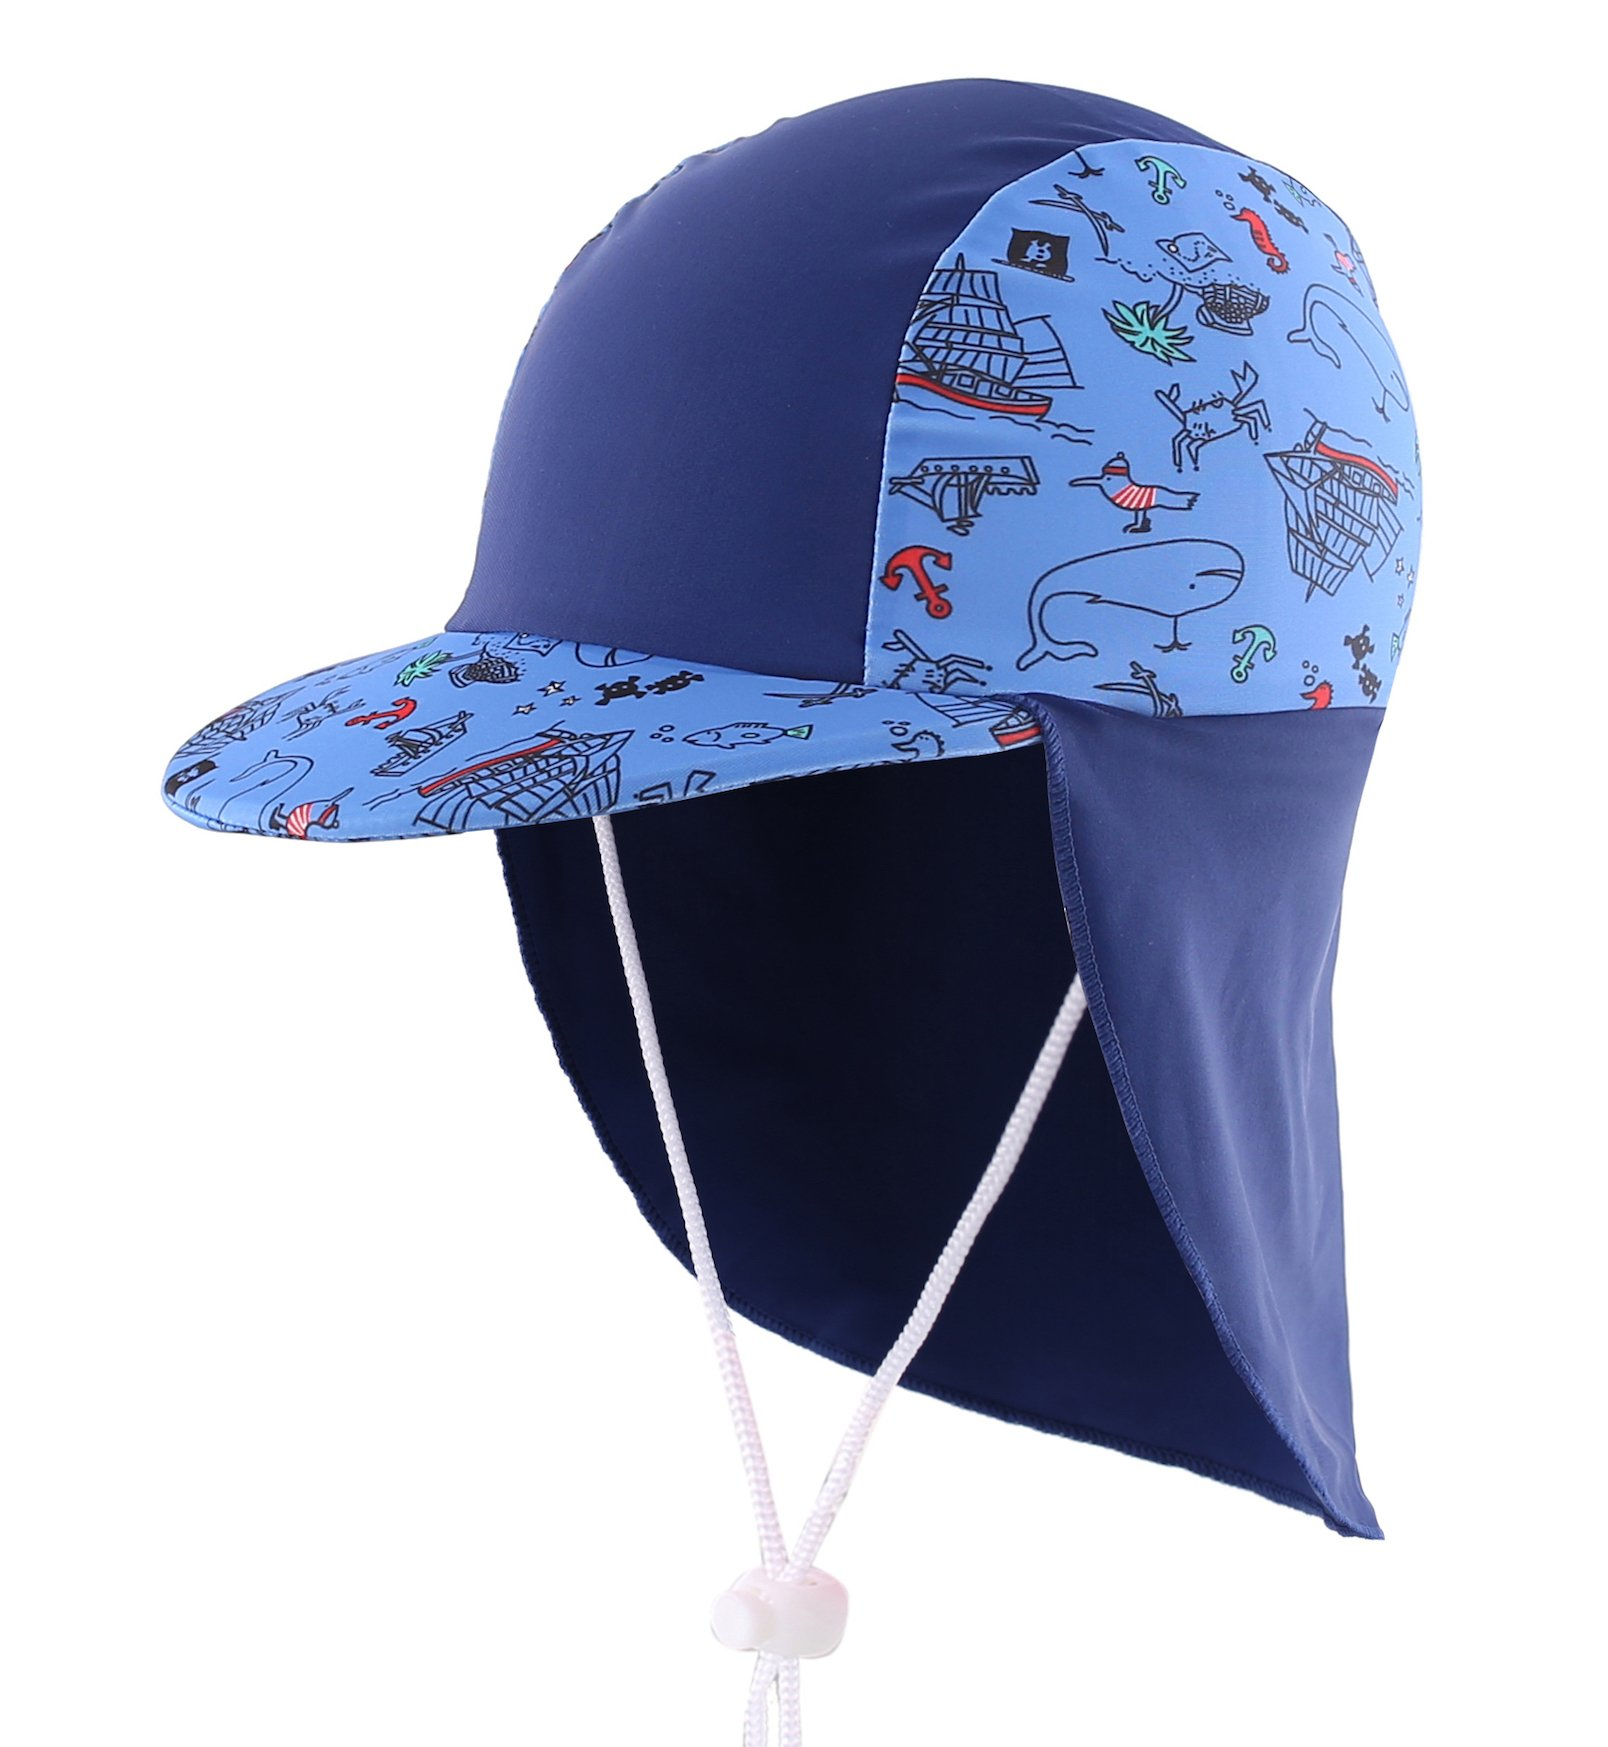 Home Prefer Boys Sun Hat Long Flap Quick Dry Sun Protection Cap with Visor Surf up Swim Hat Ocean by Home Prefer